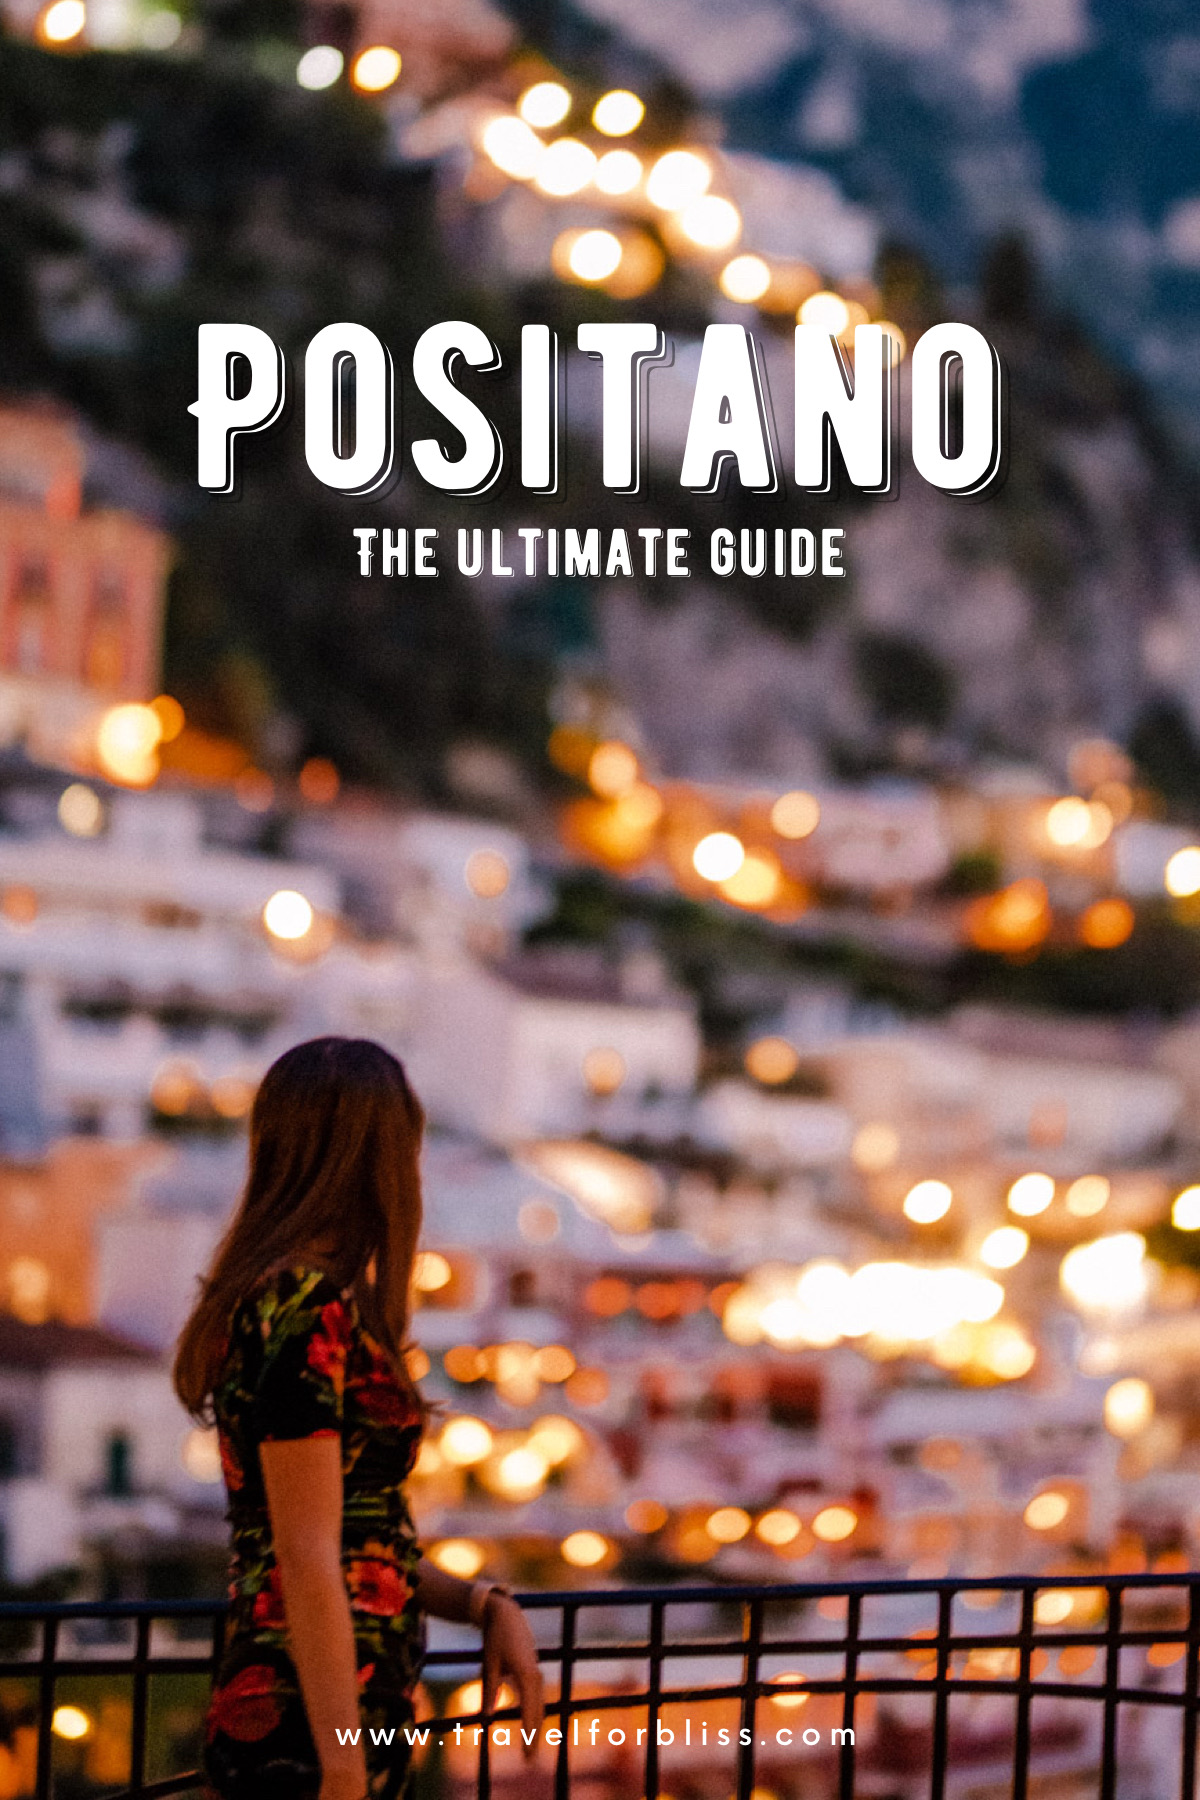 The complete guide to Positano contINS EVERYTHING YOU NEED TO KNOW TO VISIT THIS TOWN ON THE Amalfi Coast. Find out where to stay and how to get to Positano.